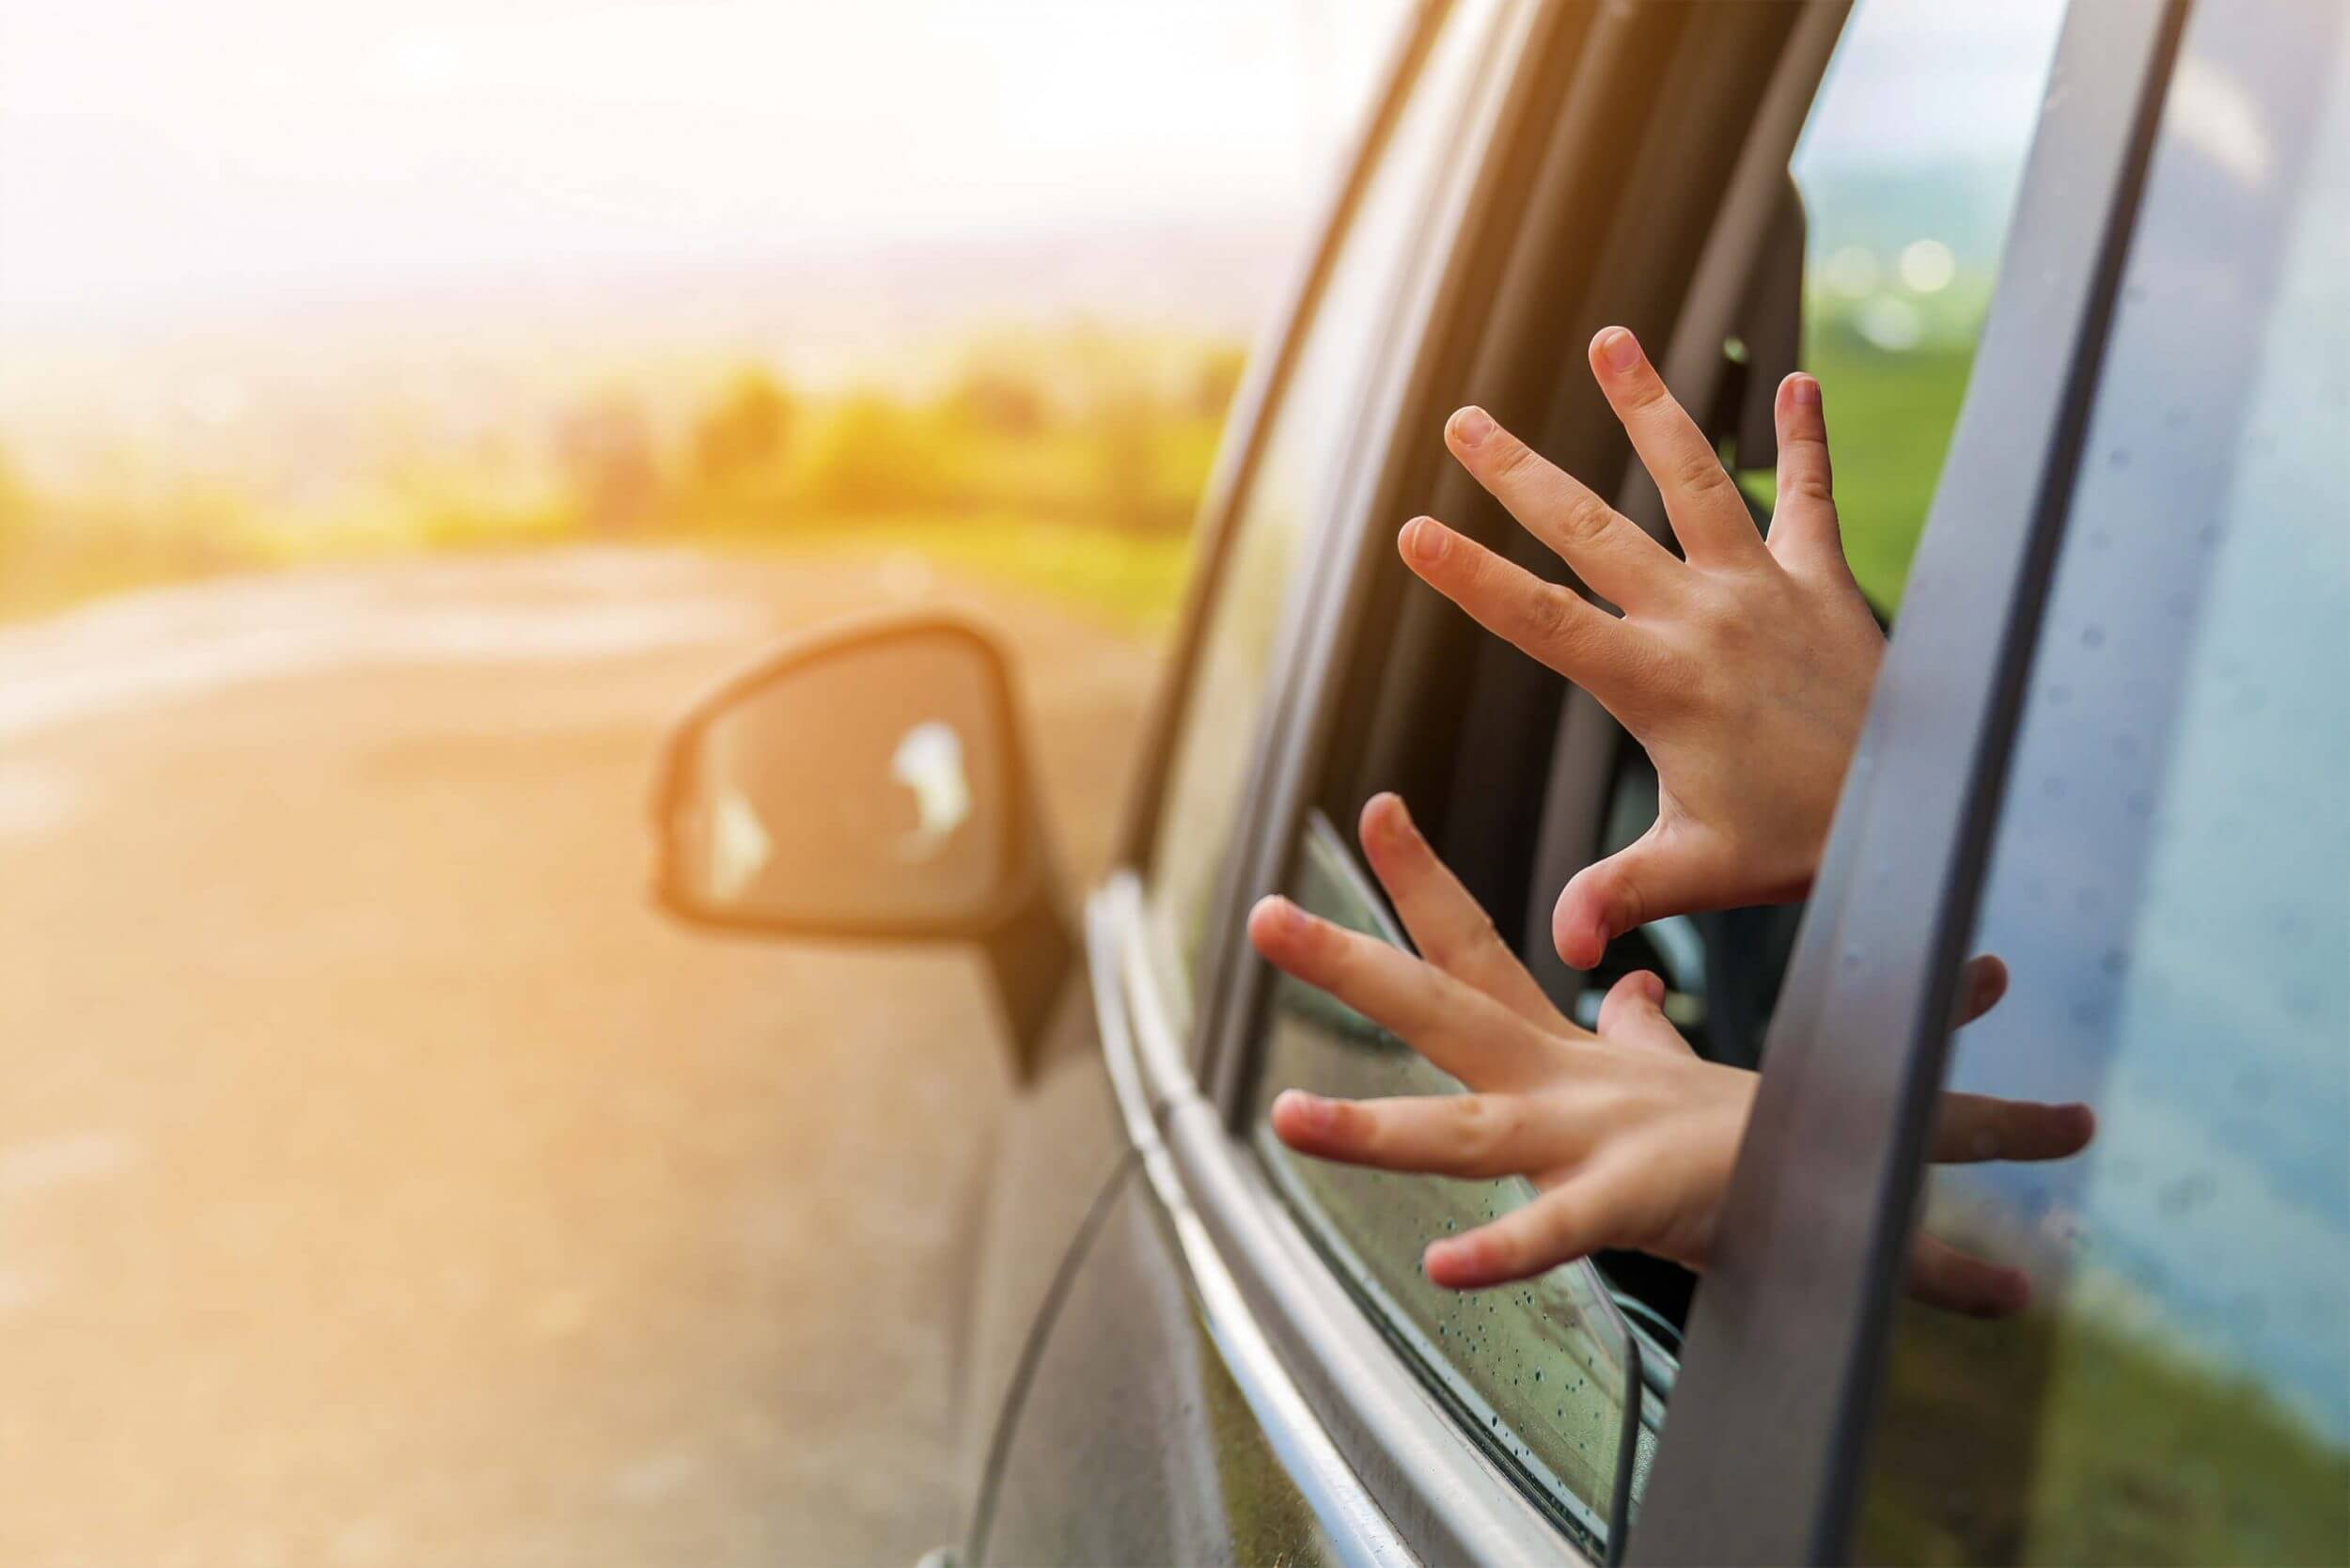 Hands waving out of window